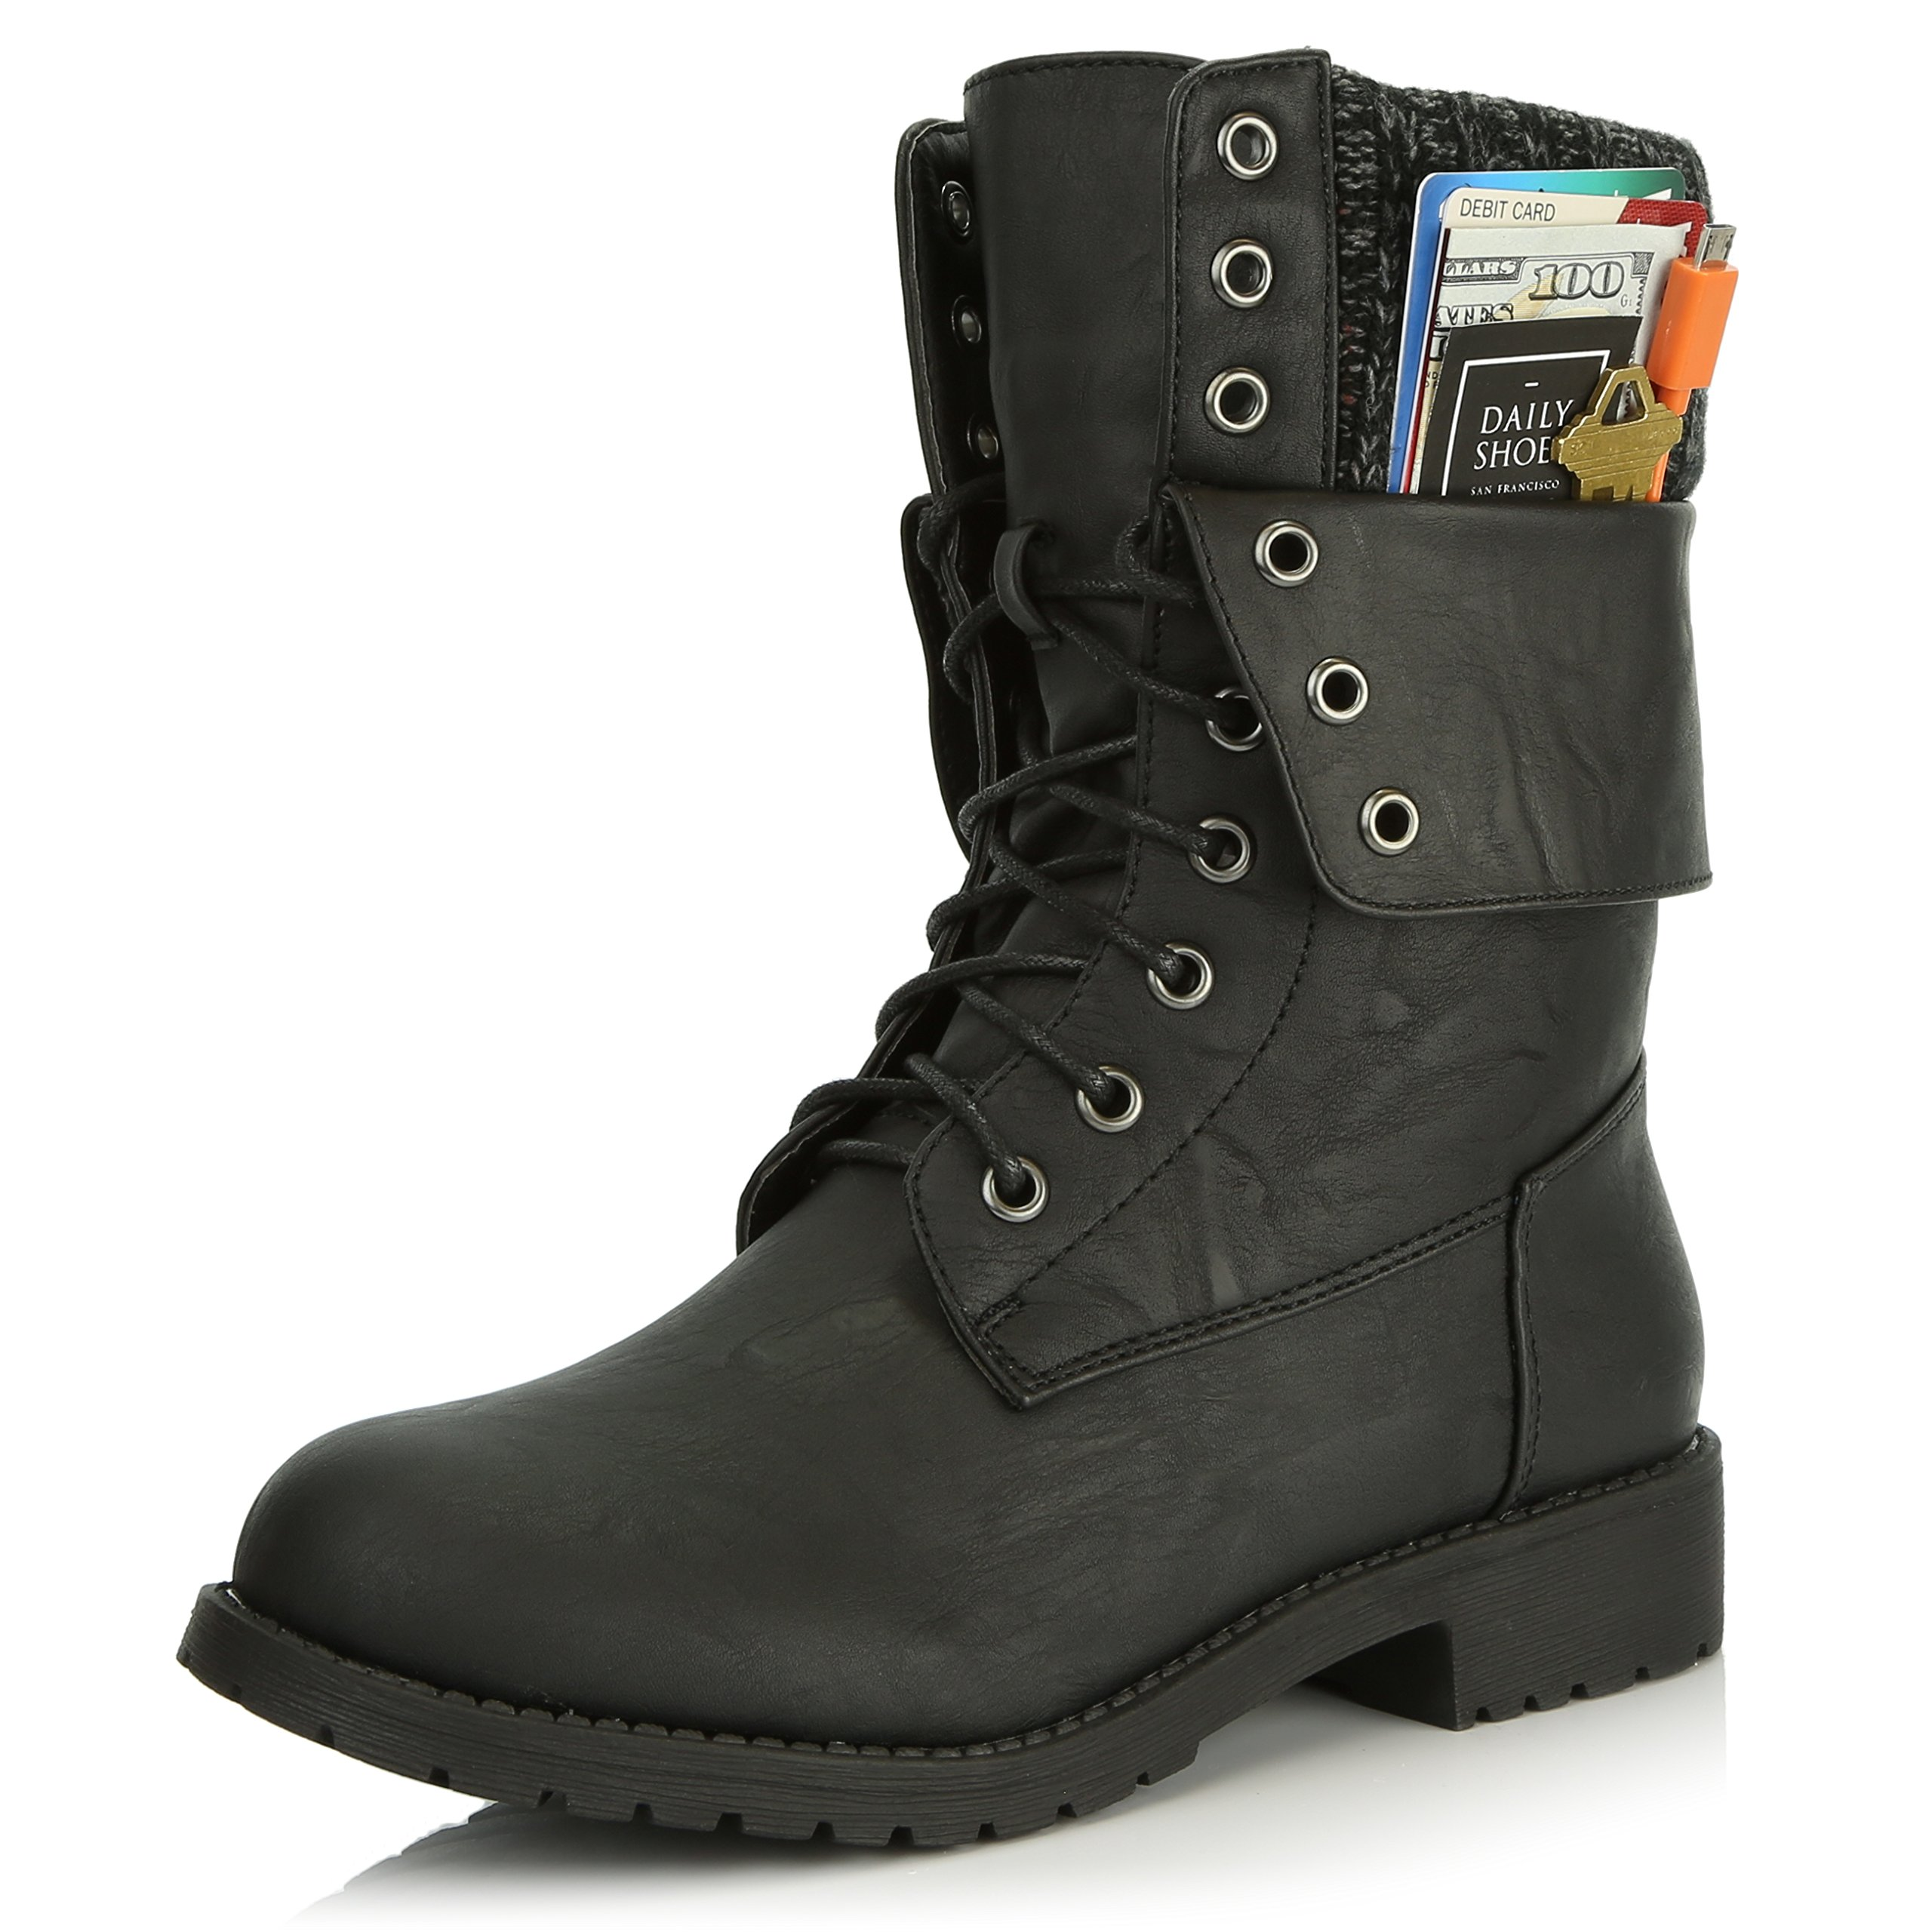 DailyShoes Womens Military Lace up Buckle Combat Boots Ankle Mid Calf Fold-Down Exclusive Credit Card Pocket, Black Pu, 7